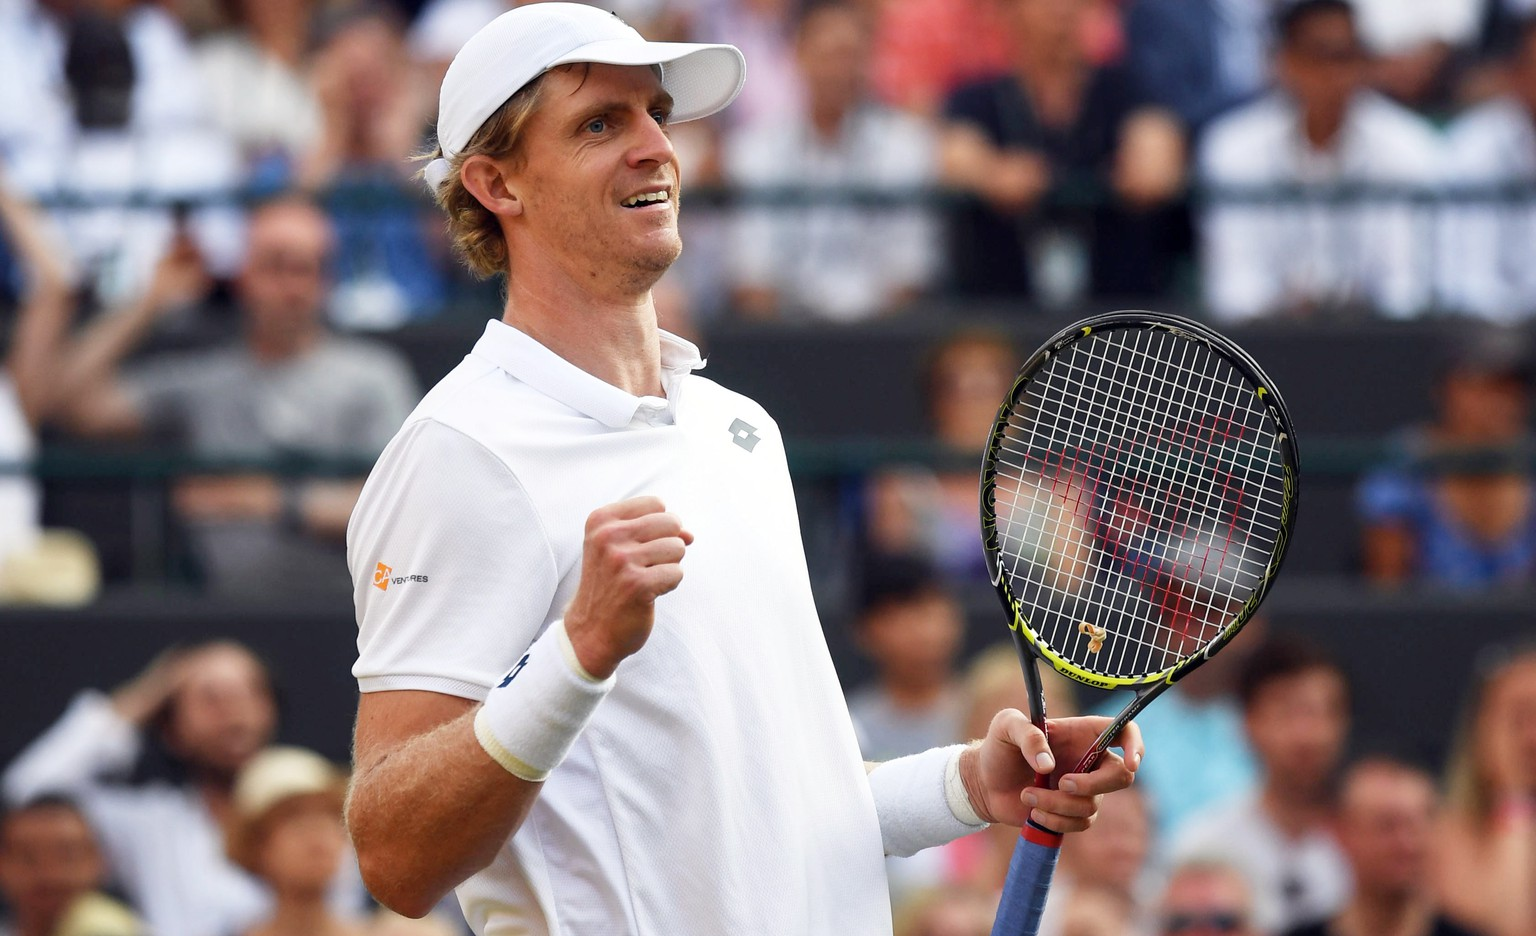 epa06876426 Kevin Anderson of South Africa celebrates his win over Gael Monfils of France in their fourth round match during the Wimbledon Championships at the All England Lawn Tennis Club, in London, Britain, 09 July 2018. EPA/GERRY PENNY EDITORIAL USE ONLY/NO COMMERCIAL SALES